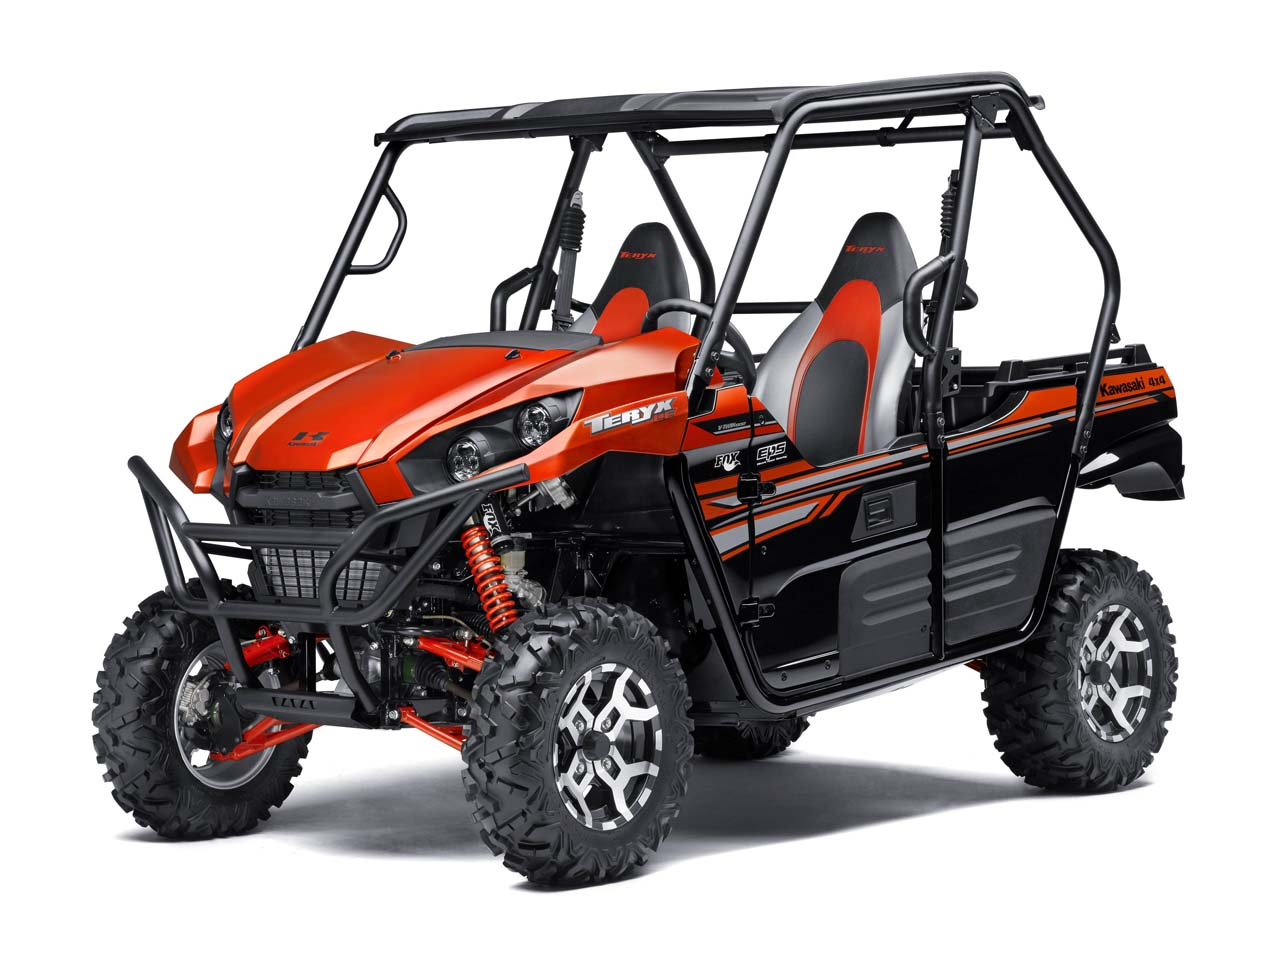 hight resolution of 2017 kawasaki teryx wiring diagram atv illustratedrh atvillustrated com design